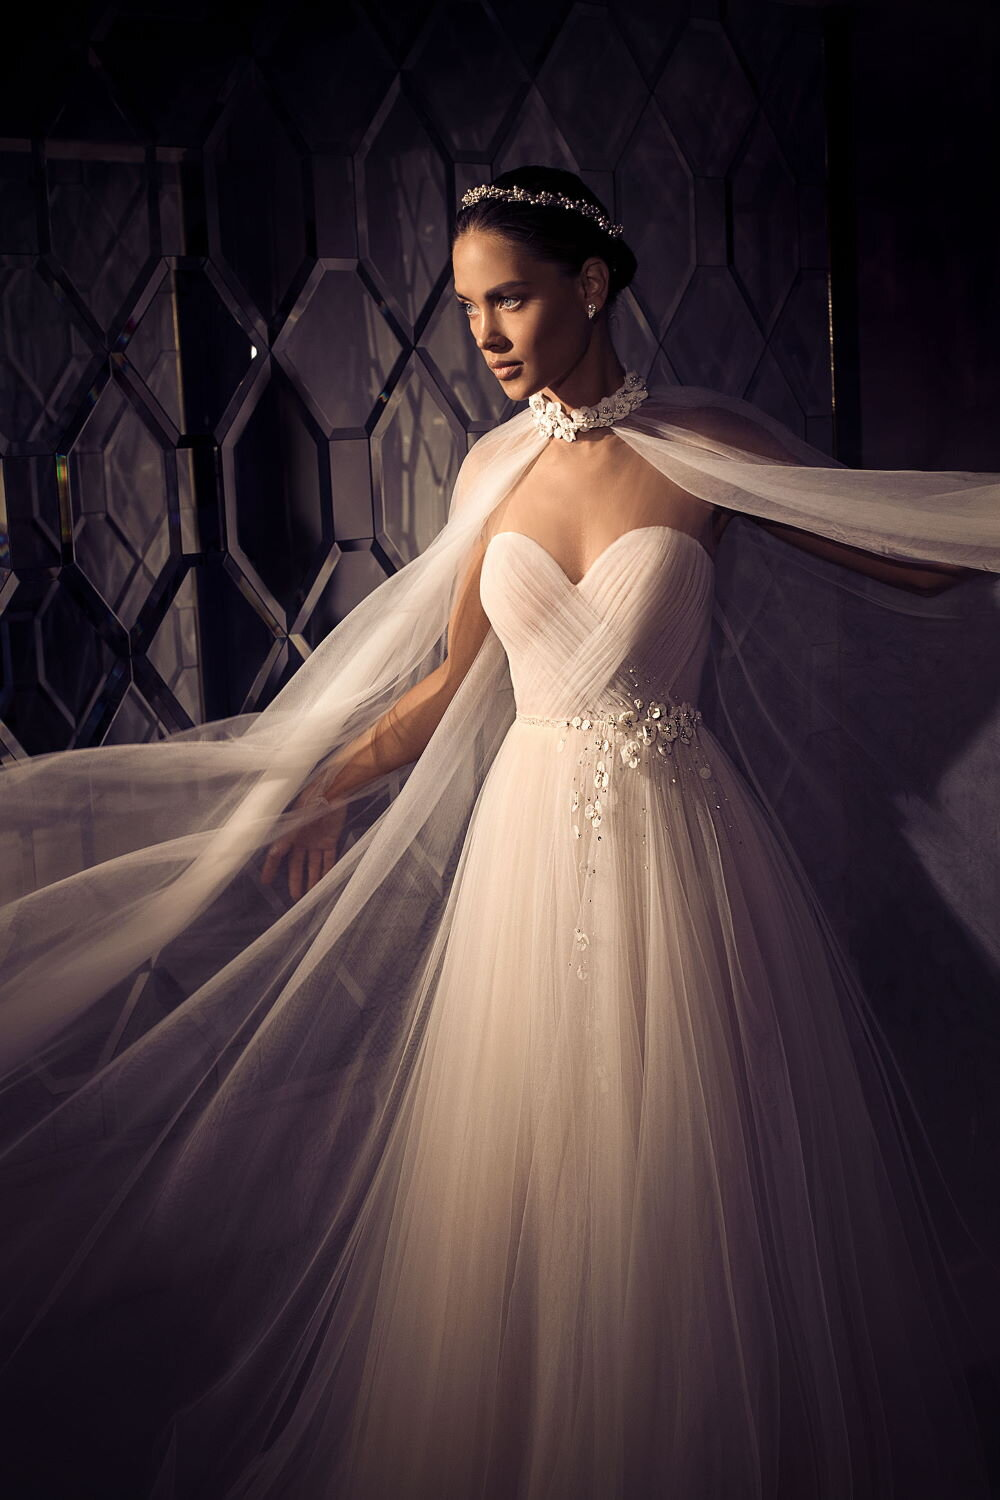 Sample bridal designer gowns at a fraction of their original cost. - www.luxebridalsamples.com.au